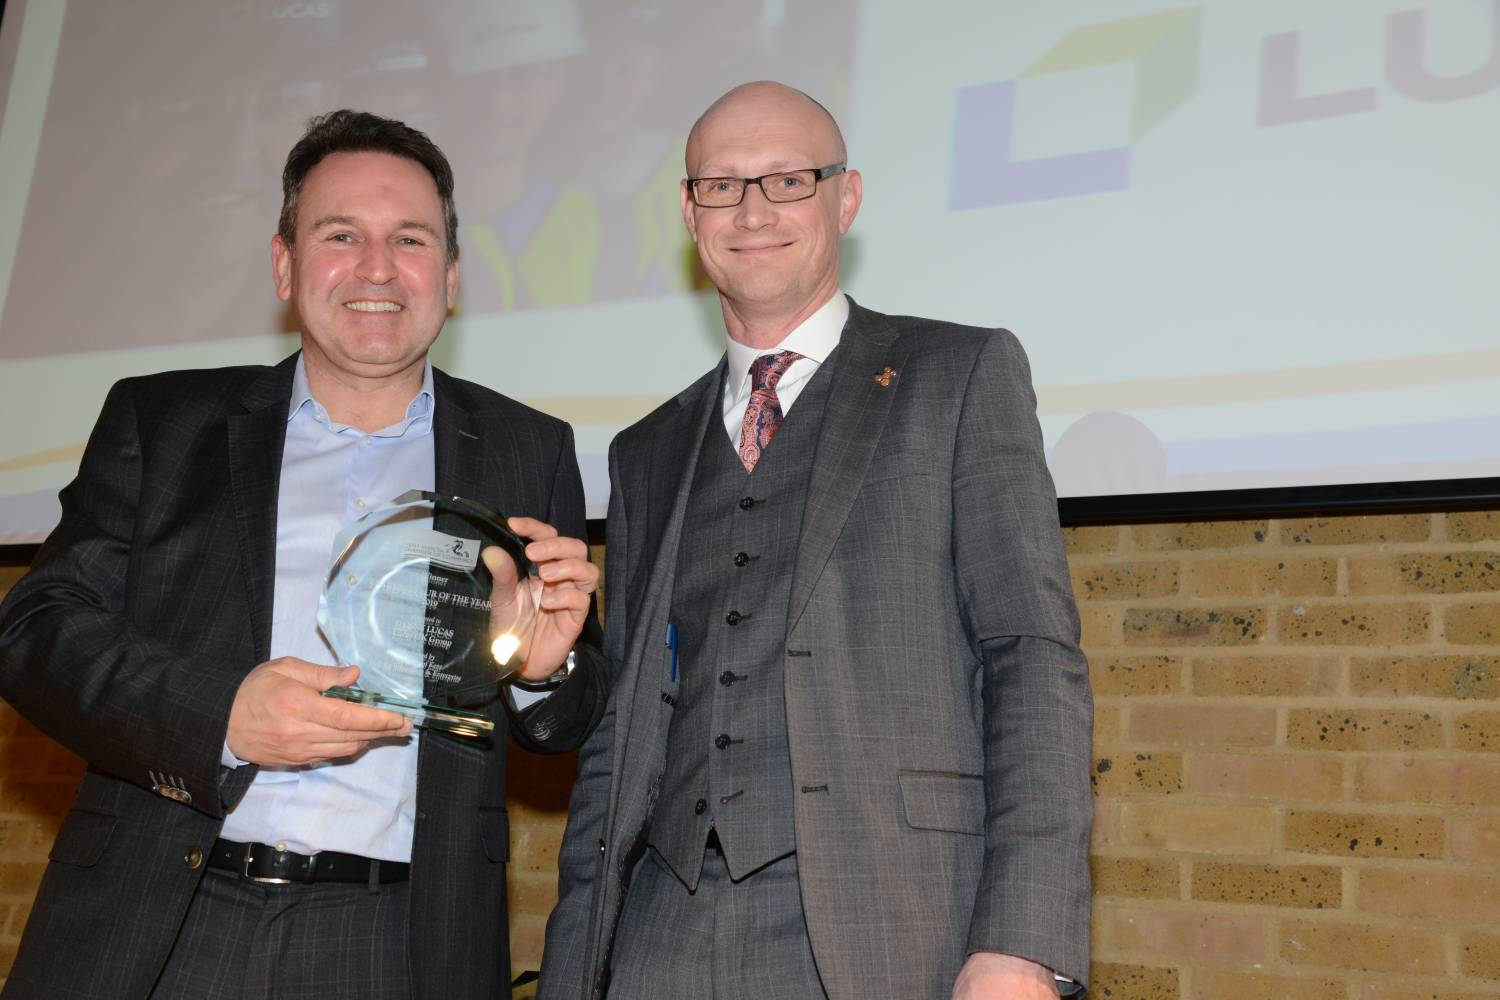 Danny Lucas wins entrepreneur of the year from kent invicta chamber of commerce awards